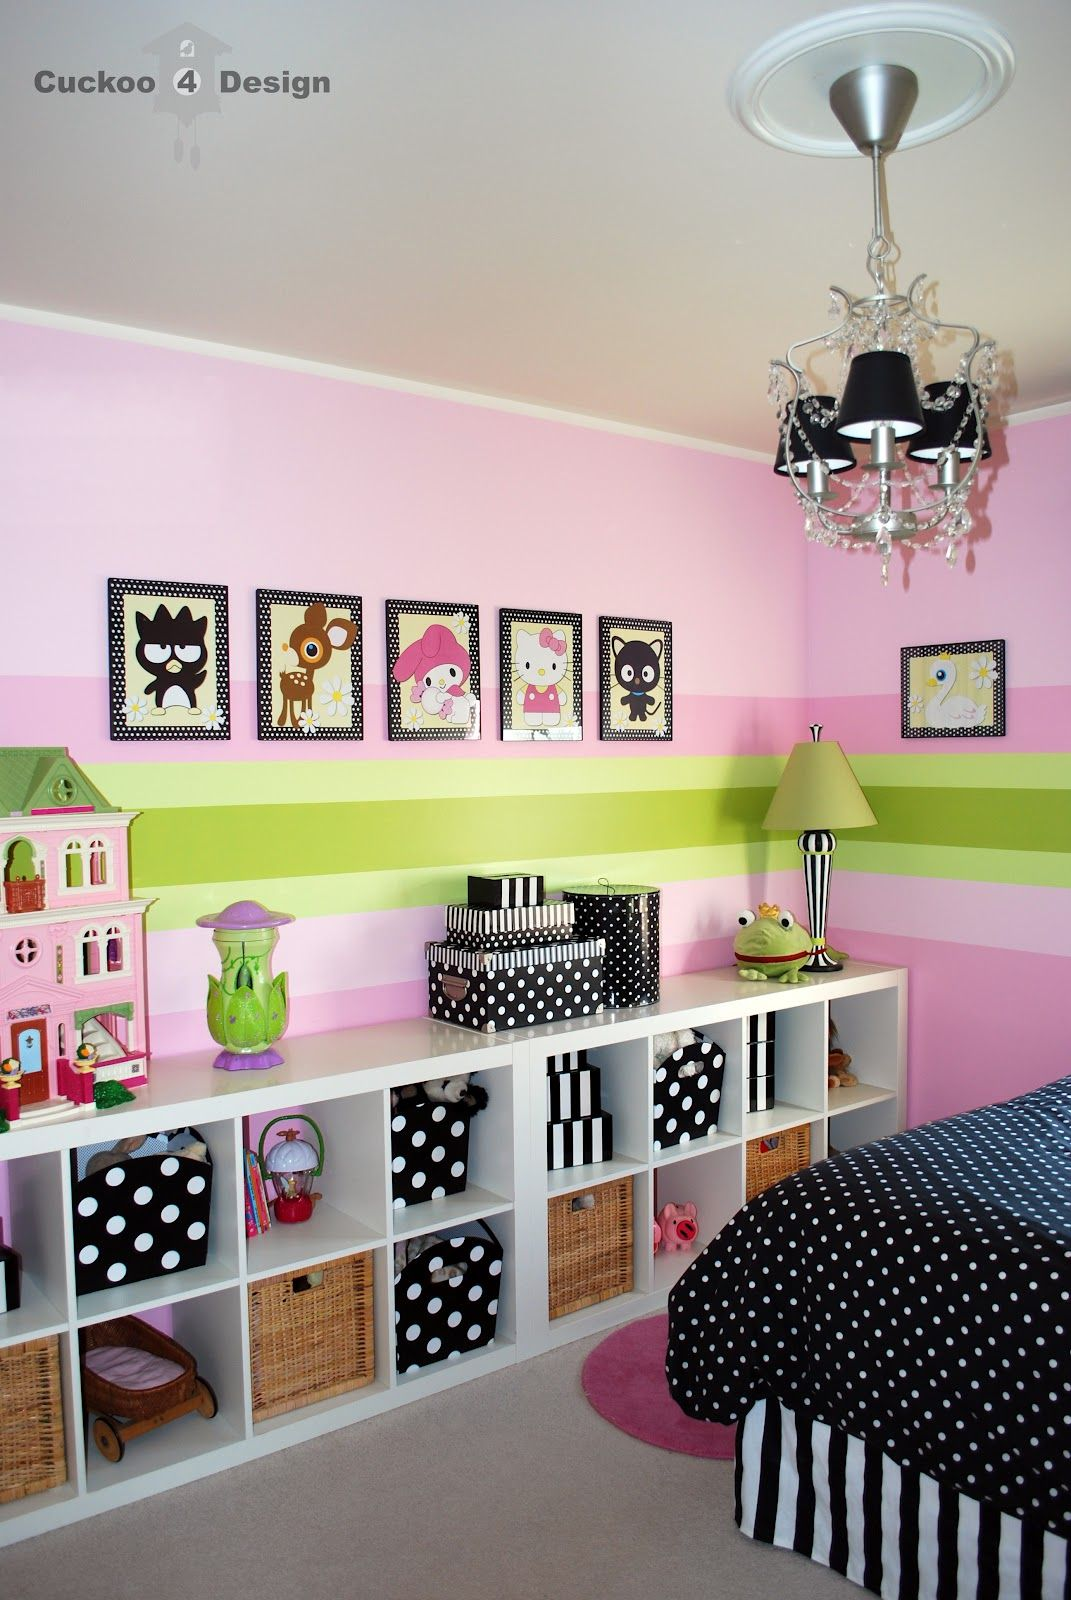 girls bedroom decor in black and pink - black/white polka dots and striped containers - expedit bookshelves